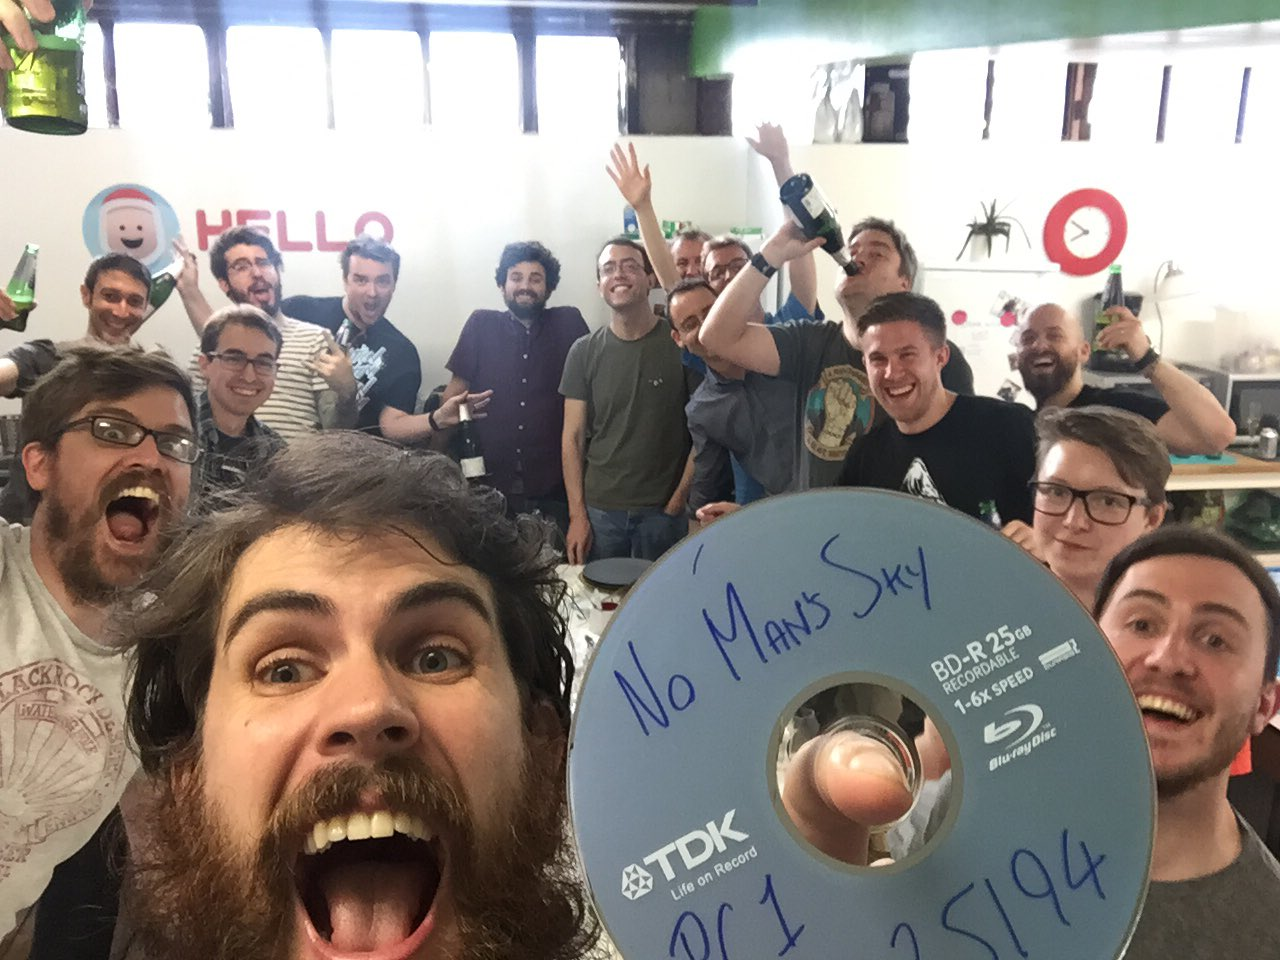 No Man's Sky gone gold